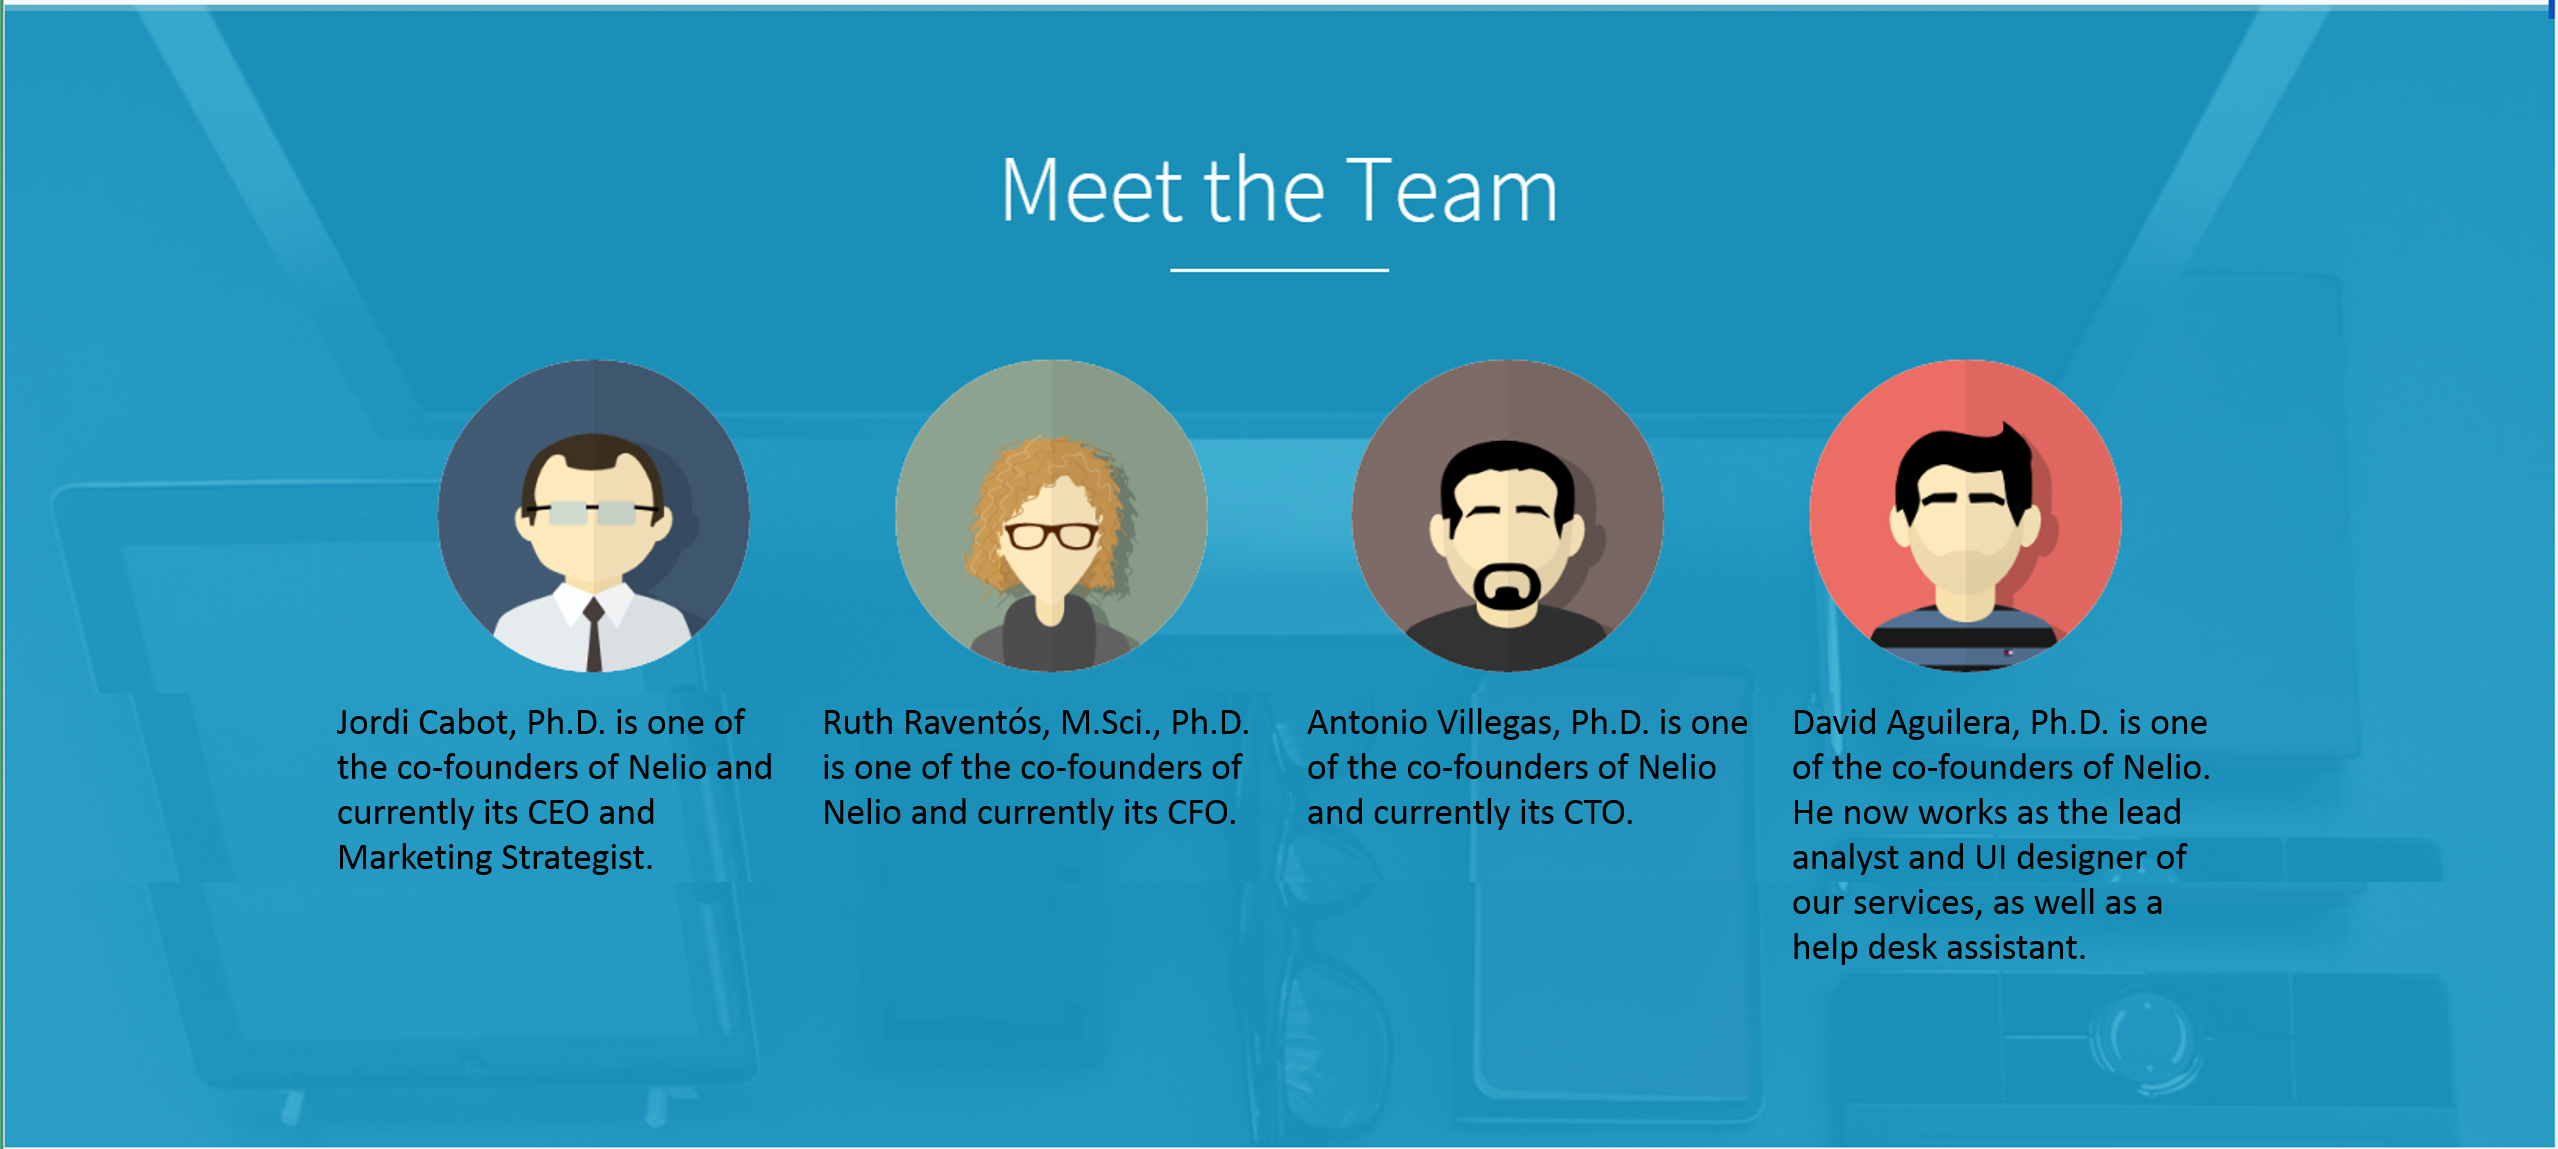 Screenthot of Alternative Version of Meet The Team in our Landing Page